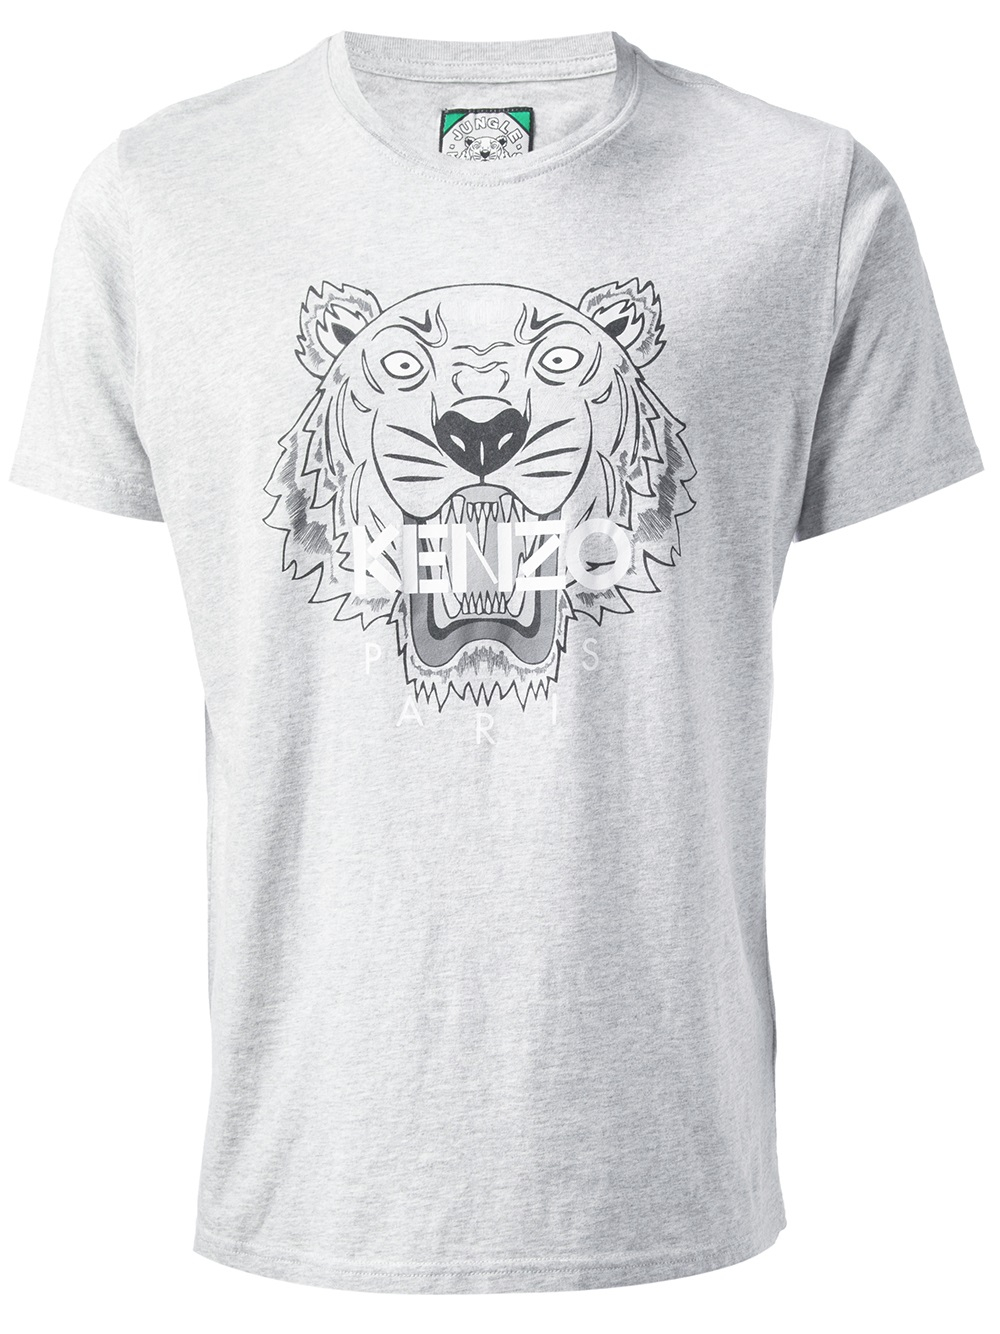 265b812a85a Lyst - KENZO Tiger Print T-shirt in Gray for Men